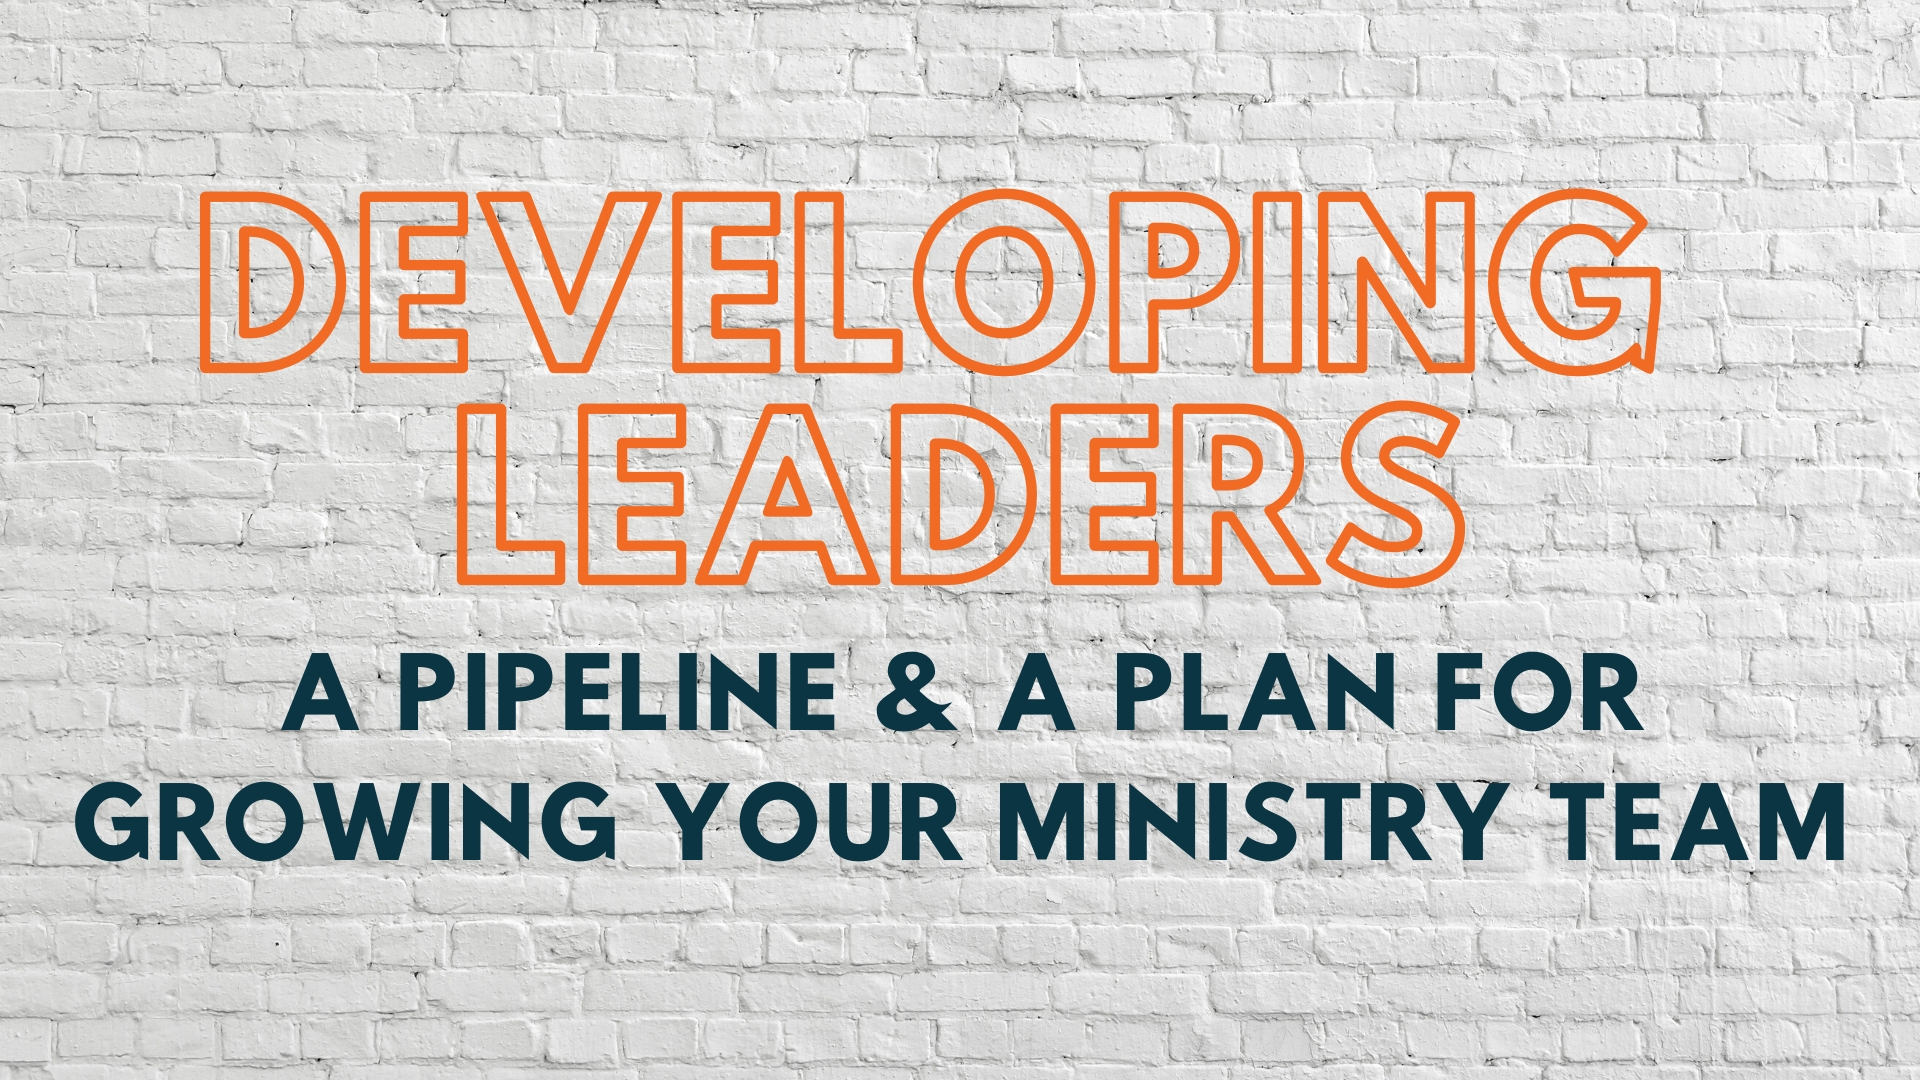 Developing Leaders: A Pipeline & A Plan for Growing Your Ministry Team